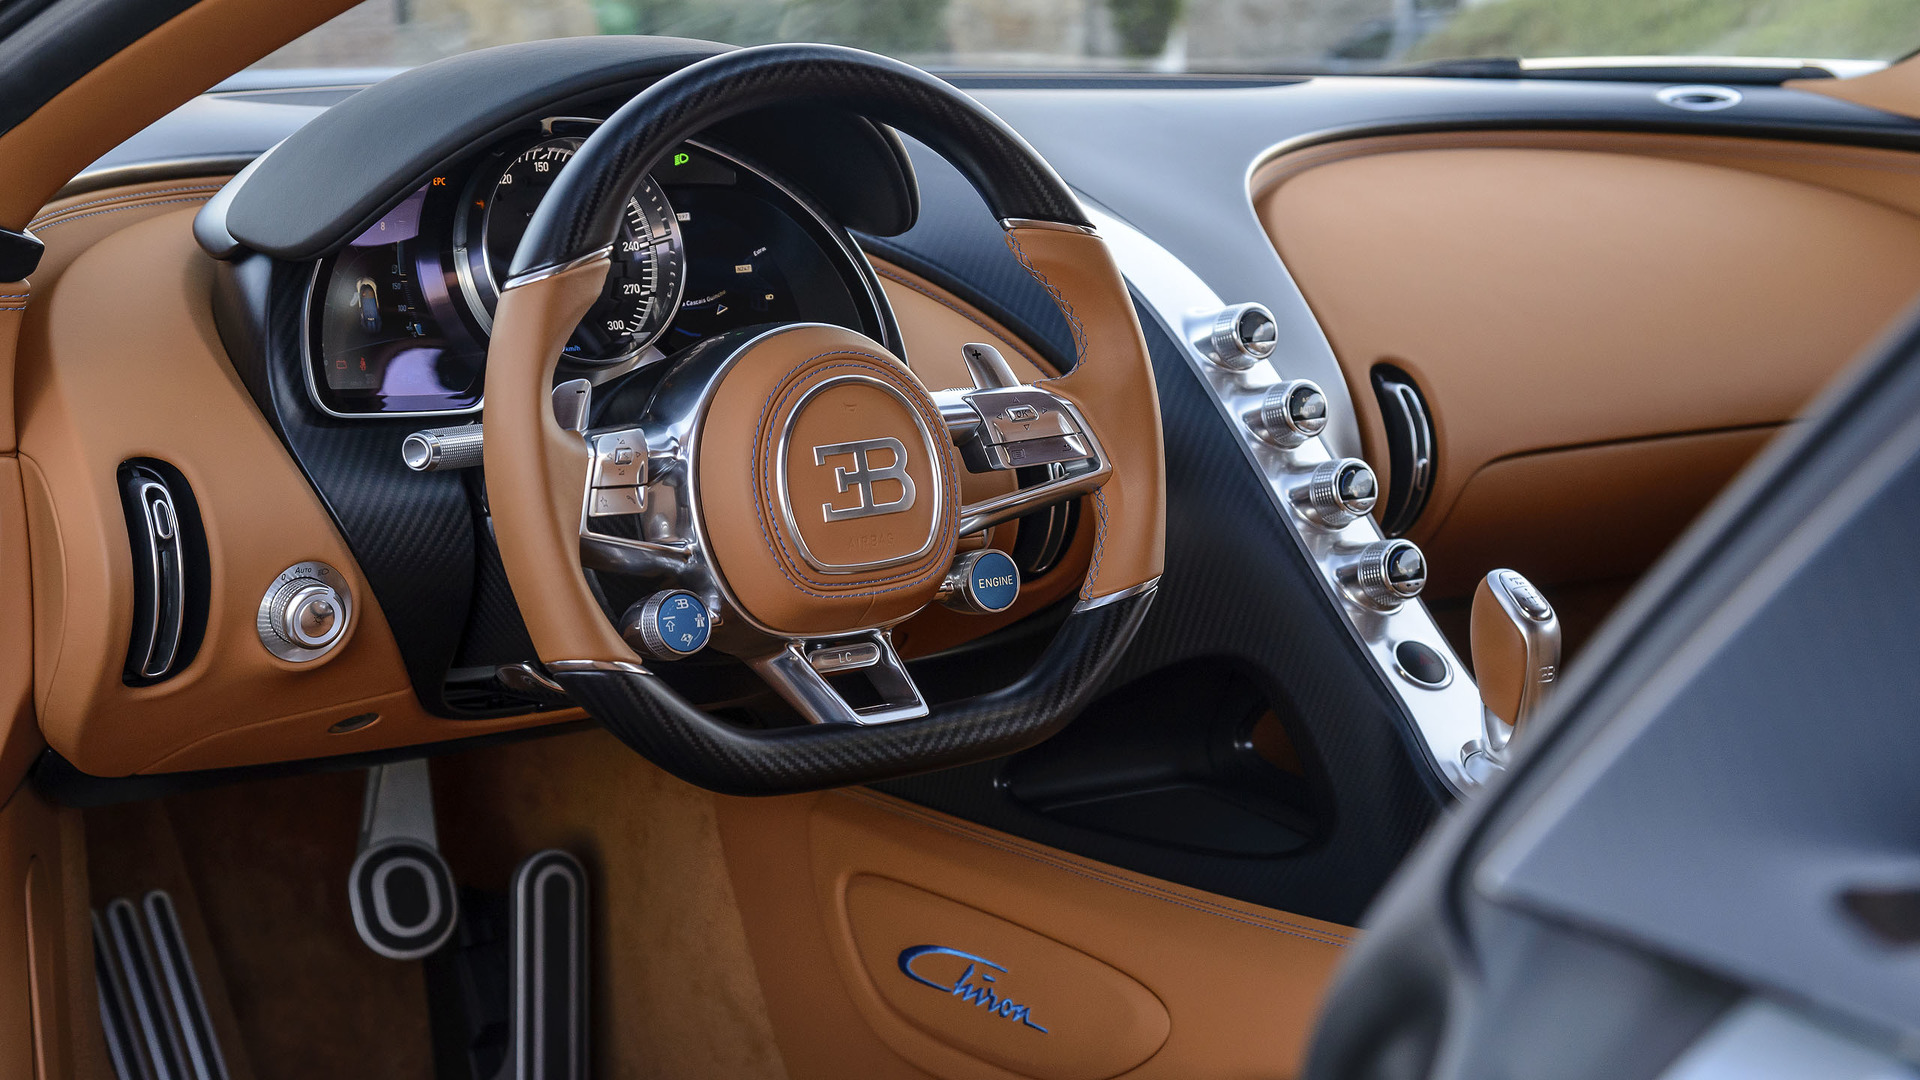 Bugatti Cars India offers 2 Models in price range of Rs 1921 crore to Rs 4100 crore Check latest car Model Prices FY 2018 Images Featured Reviews Latest